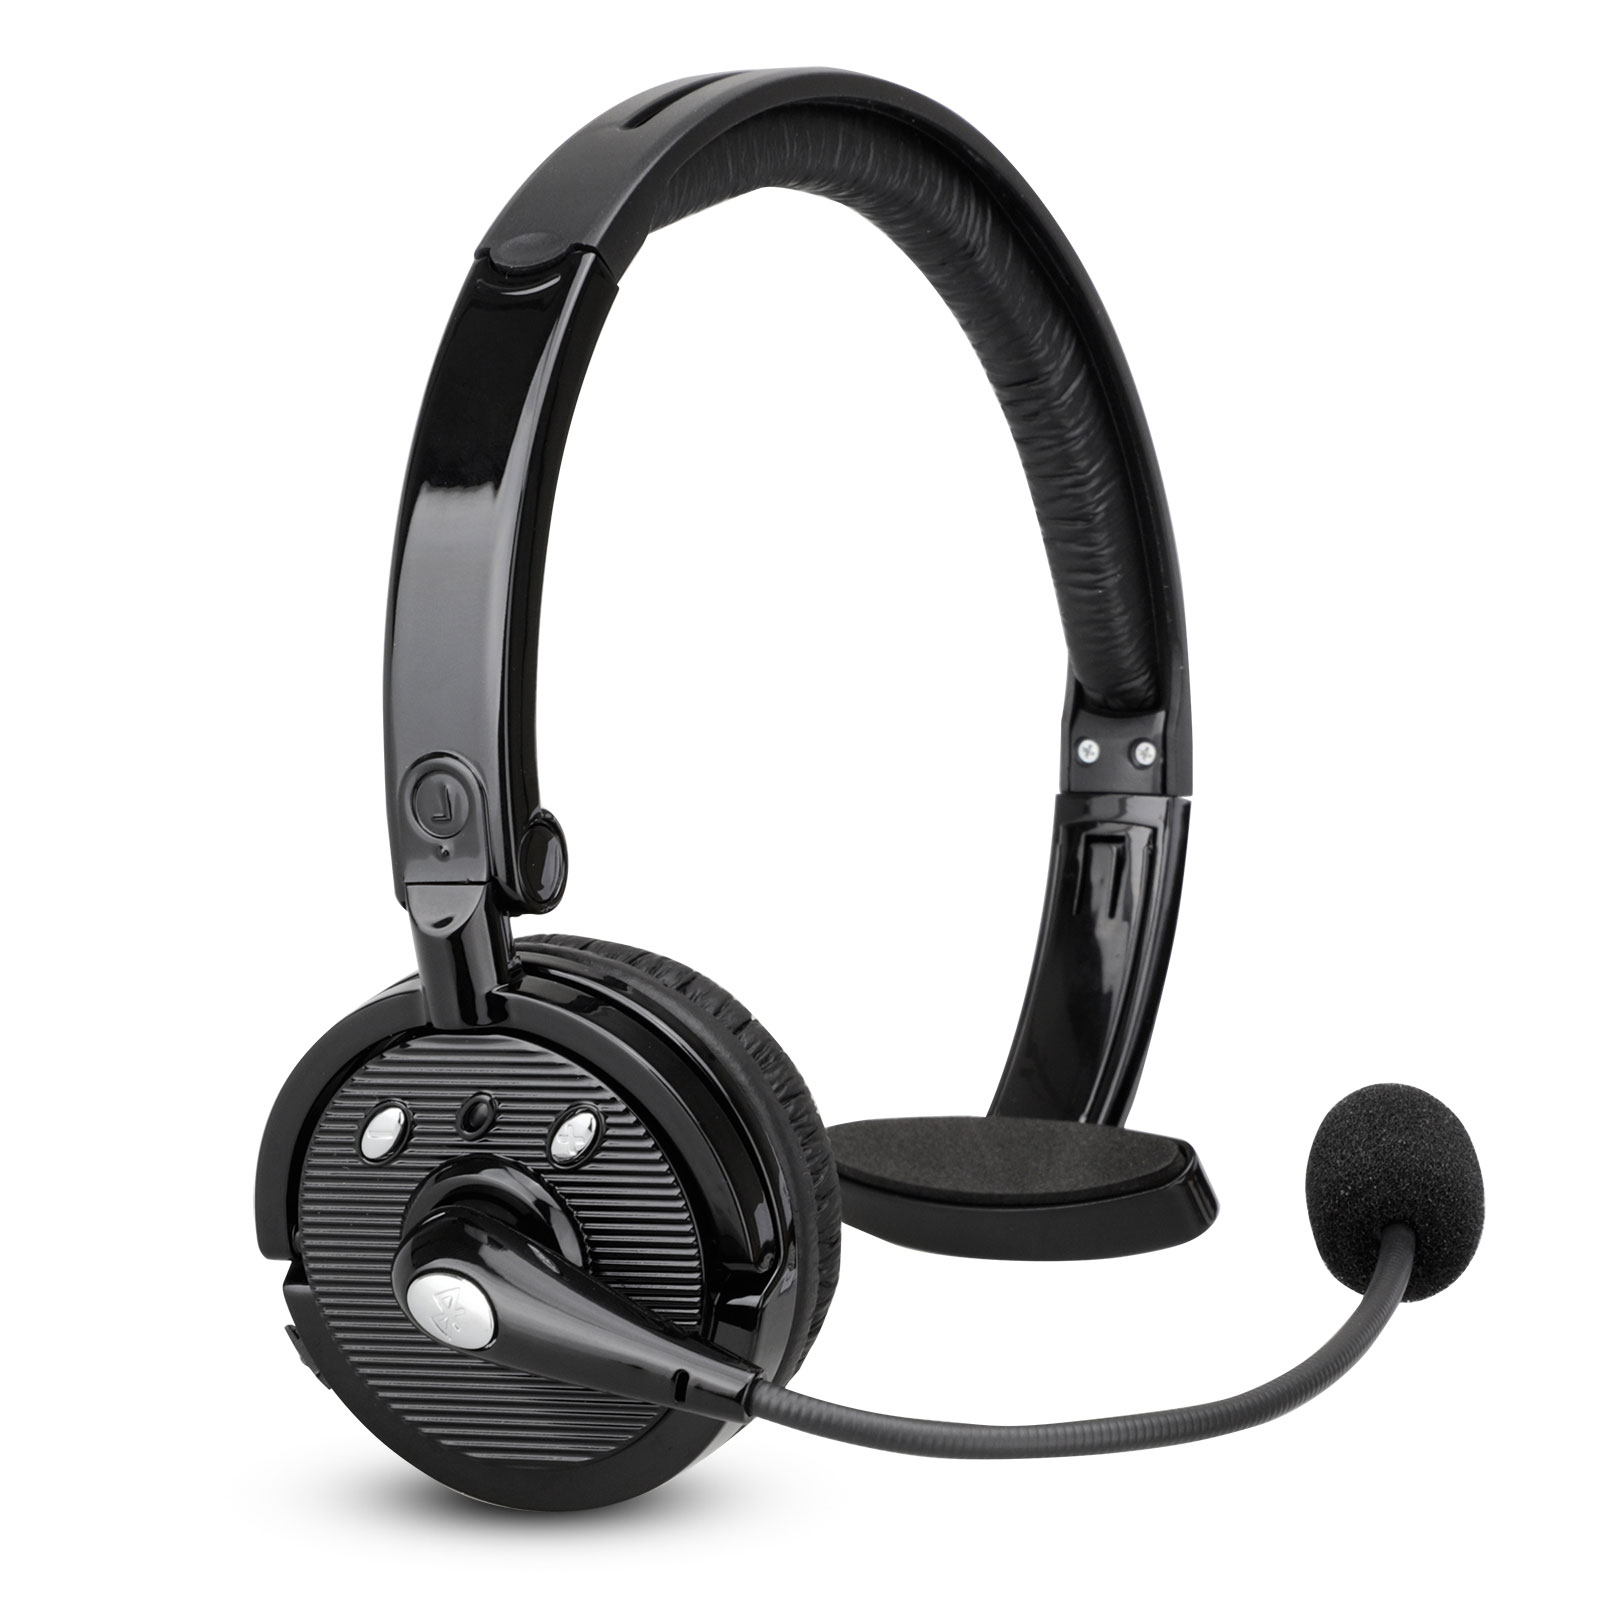 Bluetooth Headset For Drivers Pashion Over The Head Noise Canceling Wireless Bluetooth Headphones With Mic Handsfree Calling For Iphone Samsung All Bluetooth Enabled Devices Walmart Com Walmart Com